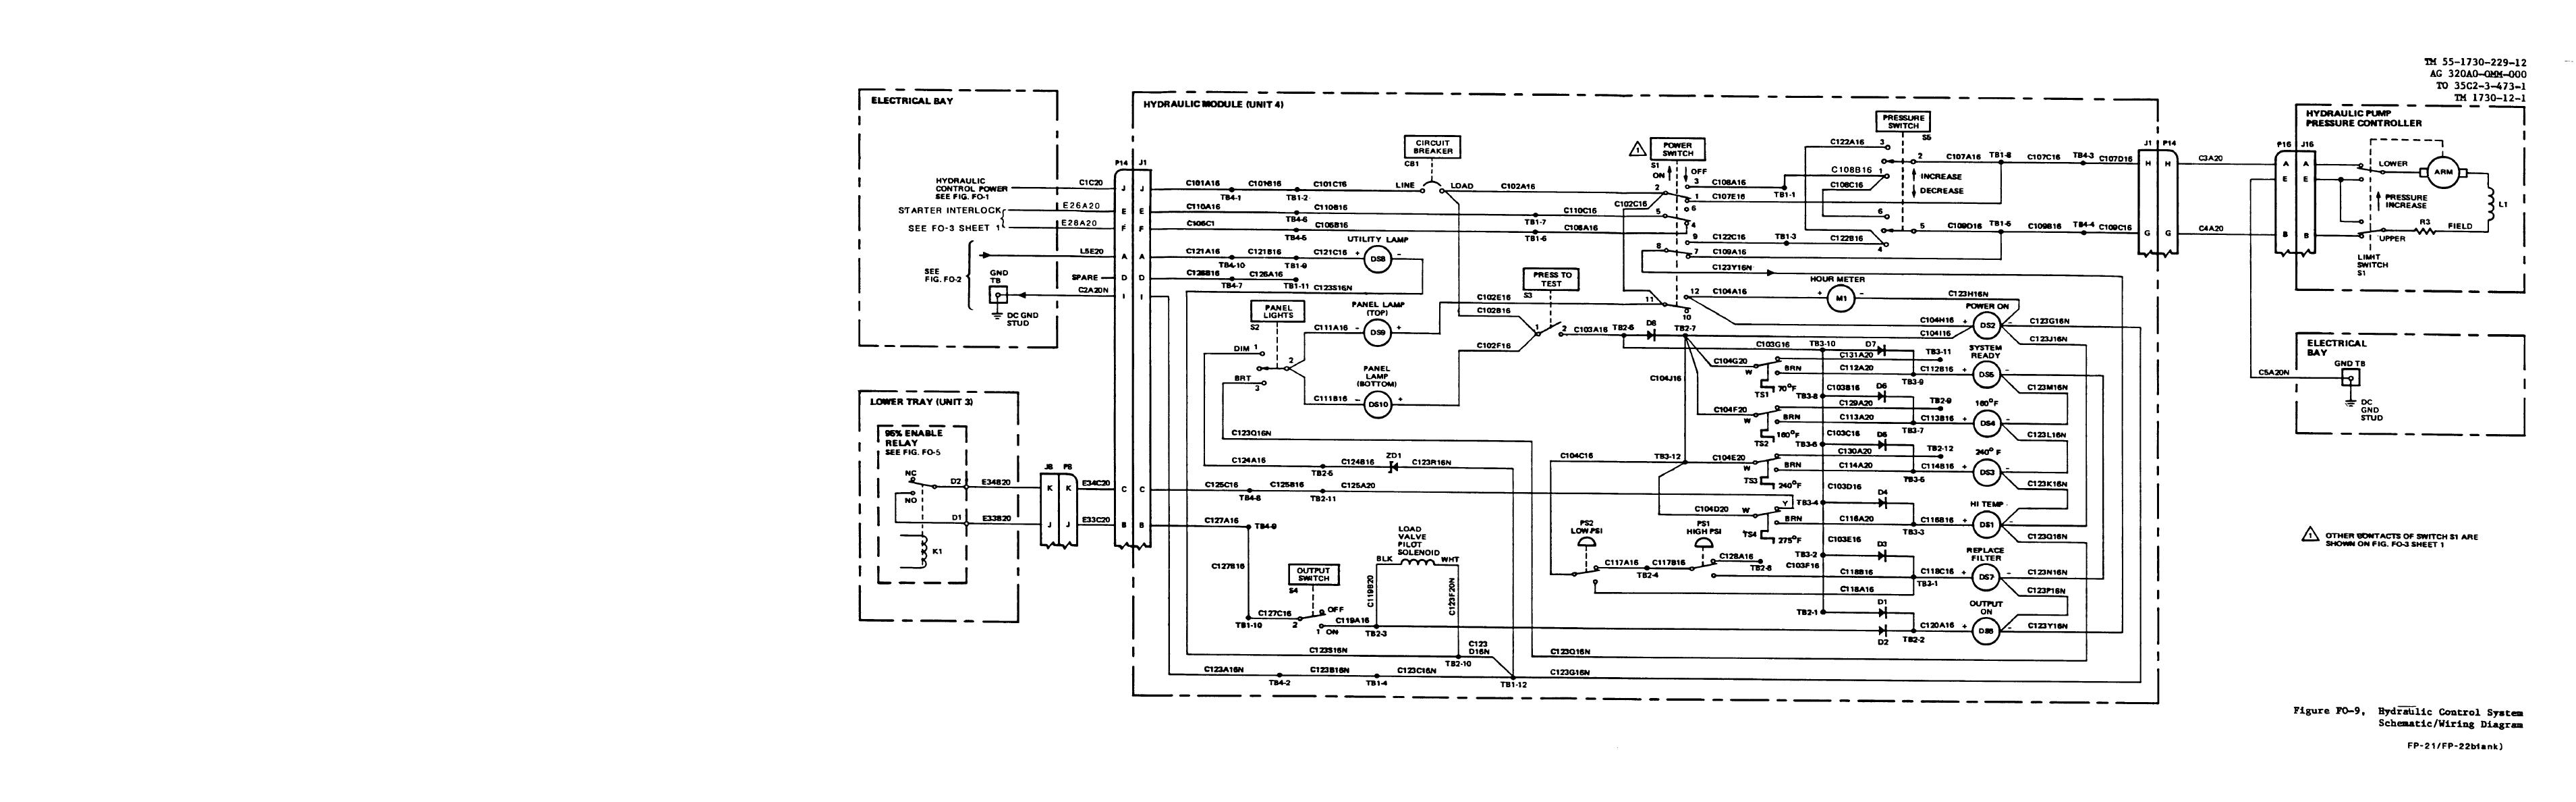 Wiring Diagram Manual For Aircraft : Figure fo hydraulic control system schematic wiring diagram